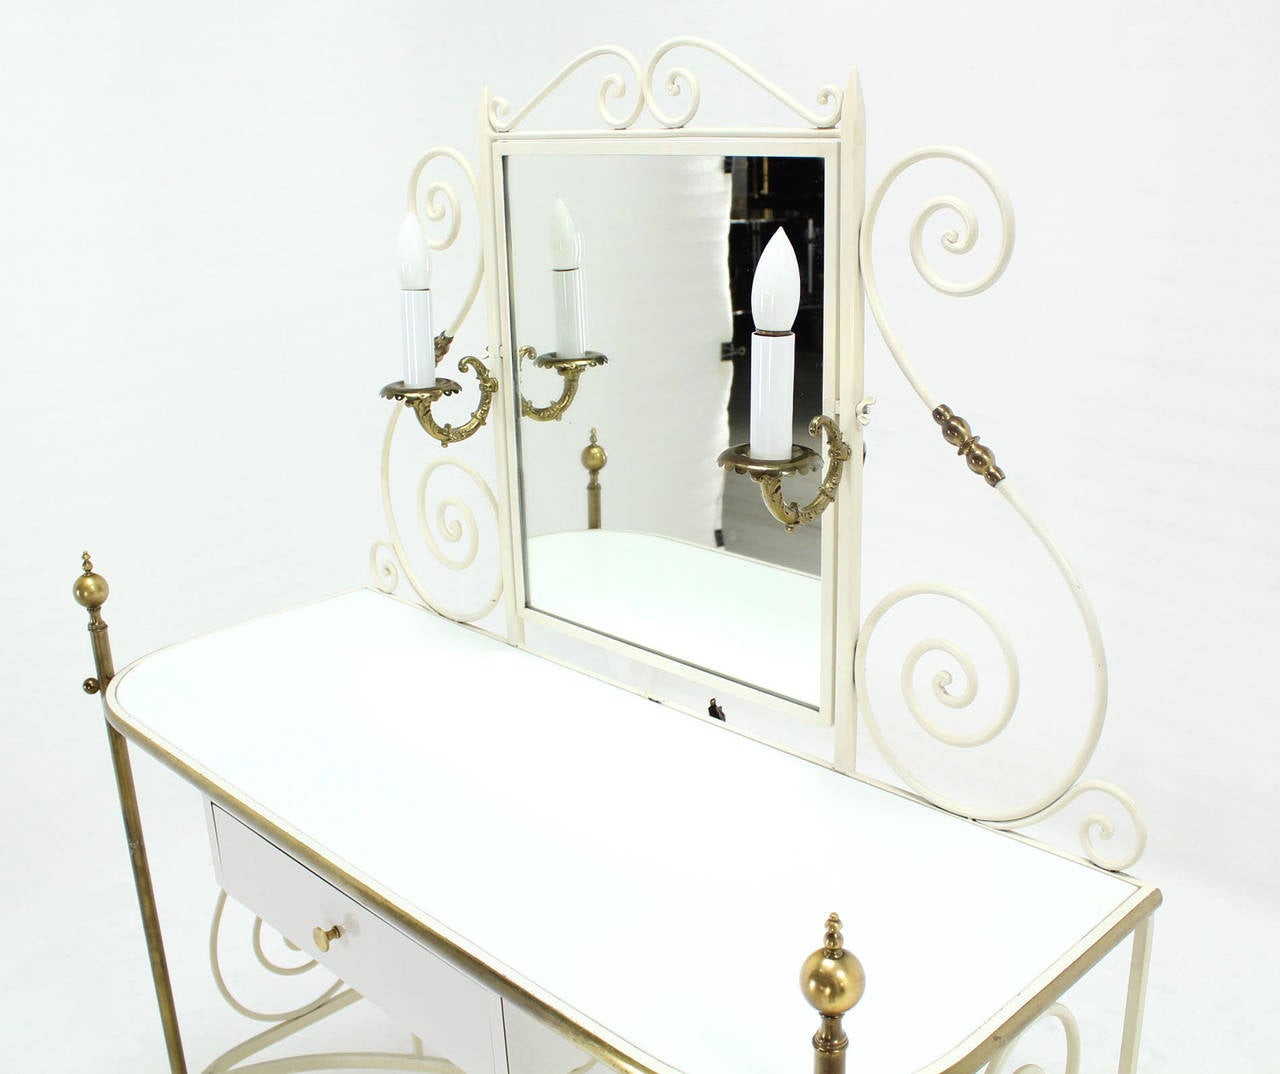 Decorative Vanity Dressing Table Milk Glass Top Metal Scrolls Brass Hardware For Sale 3